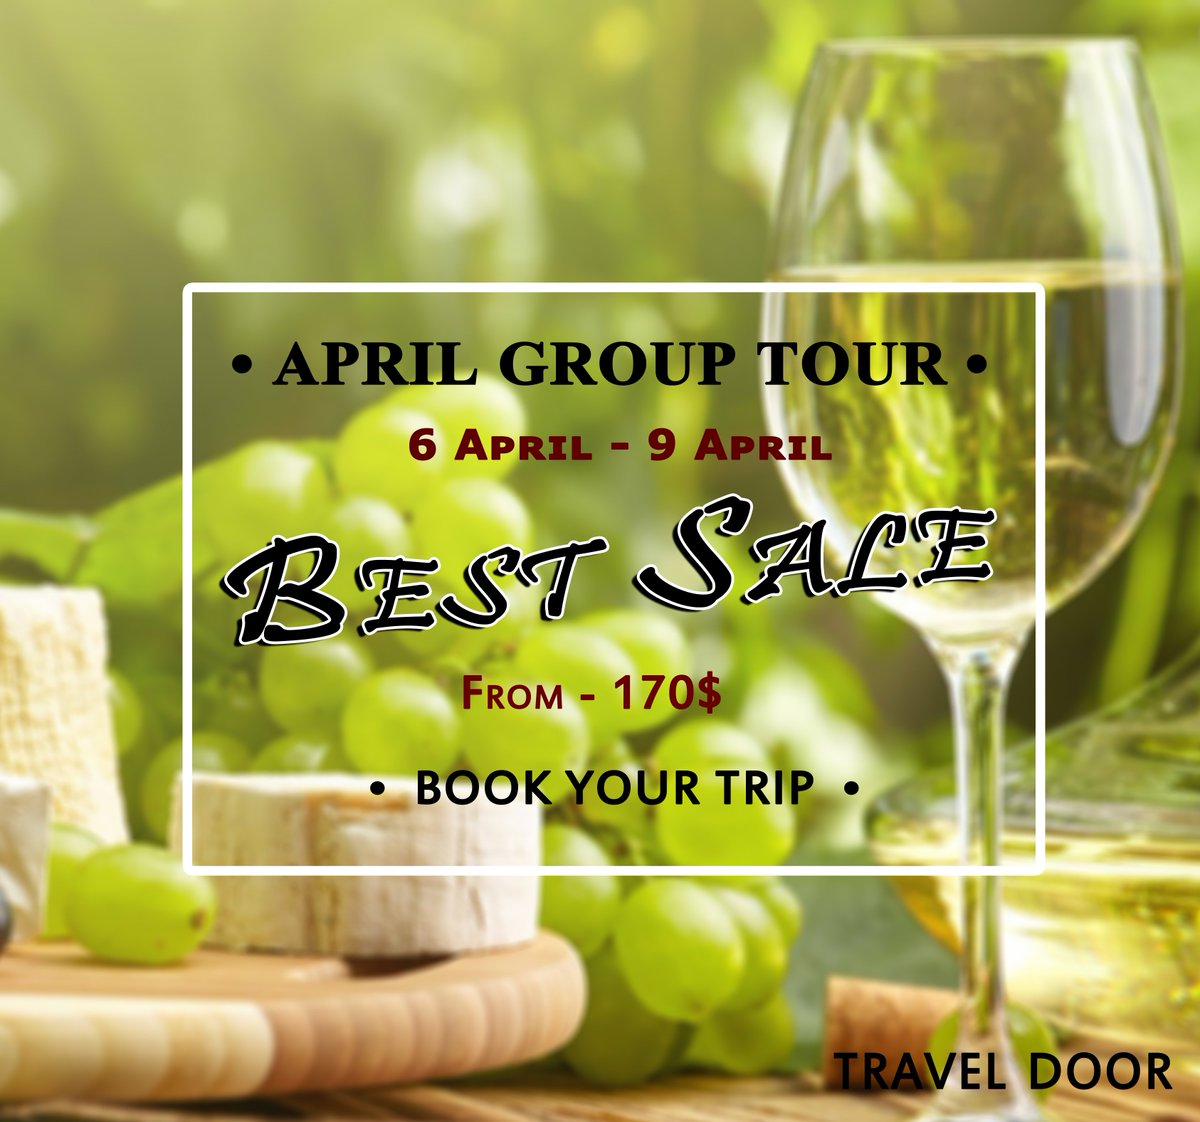 Package With 3 Star Hotel For Inquiries Traveldoorge Tour Inquiry E Mail Address Reservationtraveldoorge Salestraveldoorge